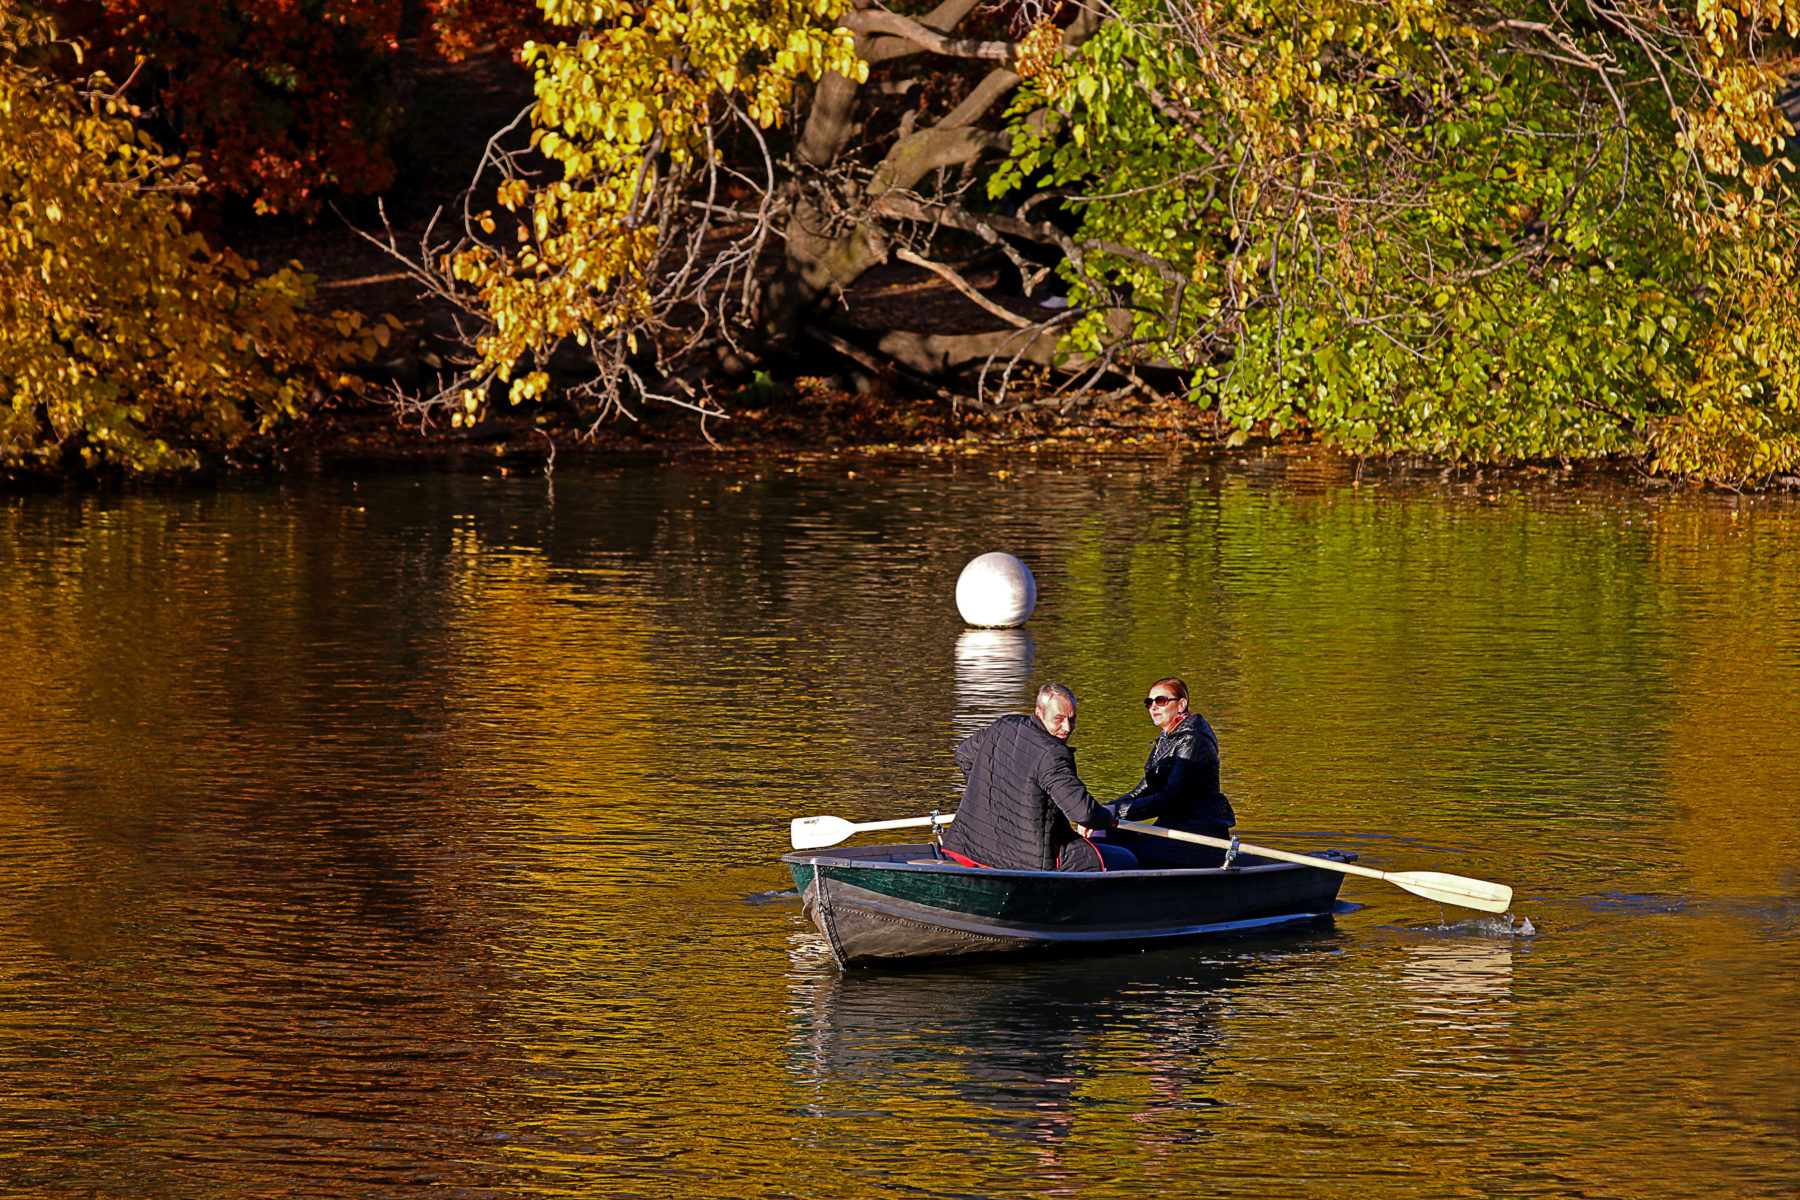 A romantic rowboat ride in Central Park